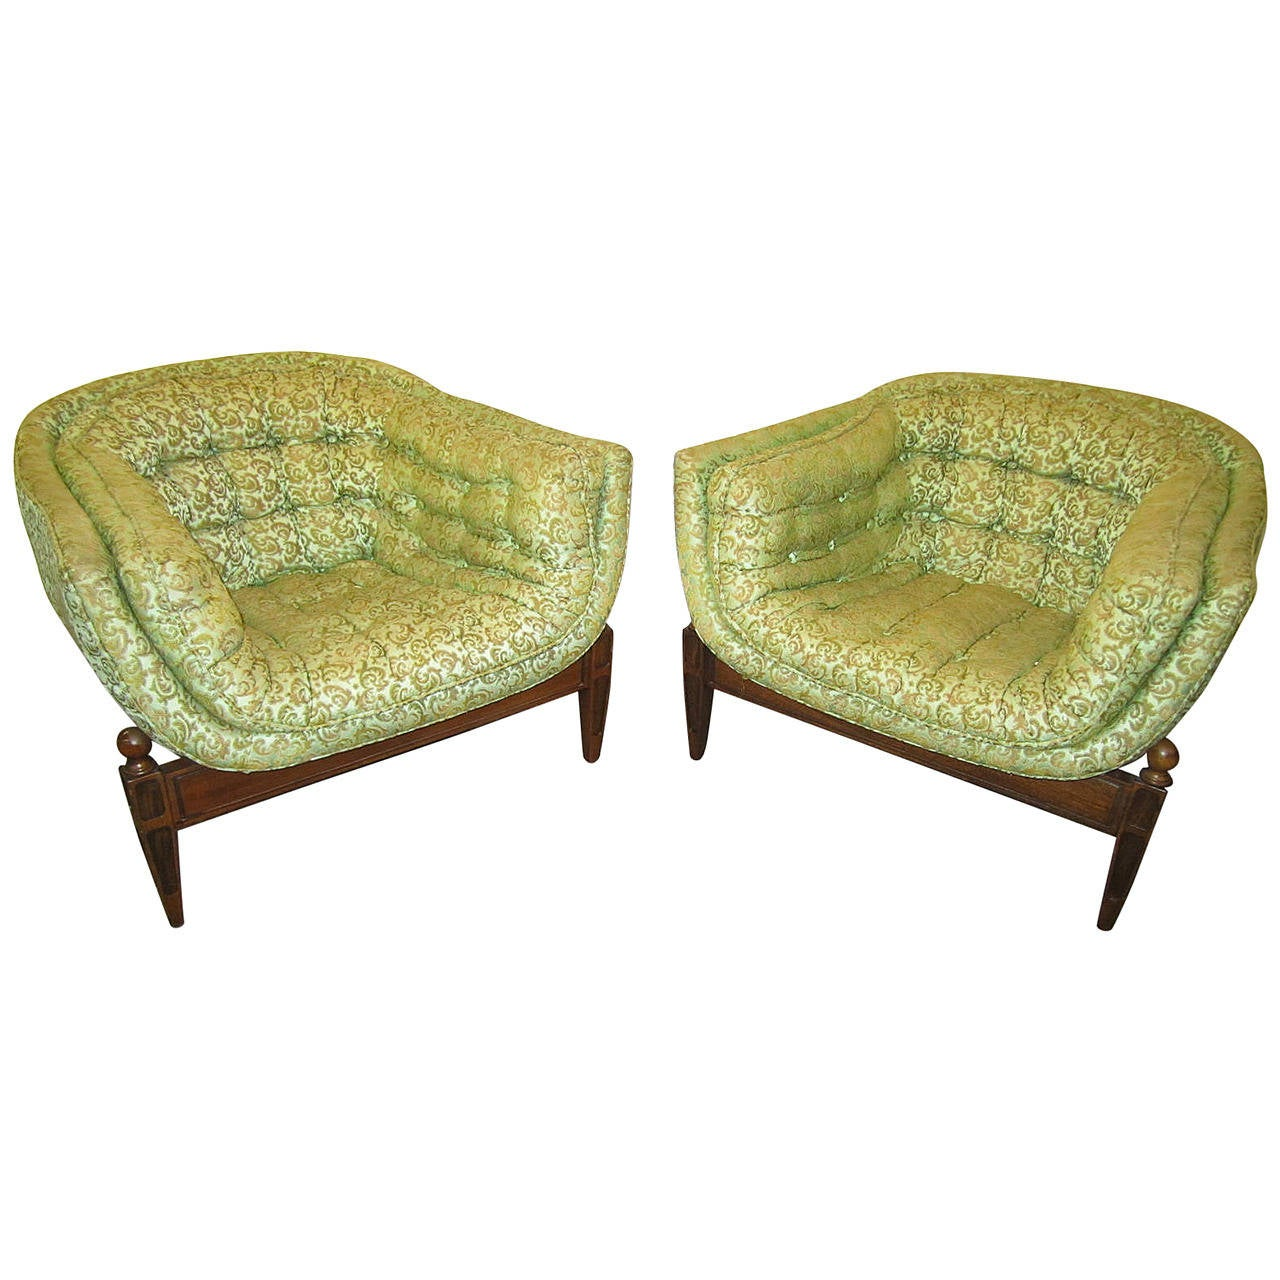 Lovely pair of mid century modern tufted 3 legged lounge chair for sale